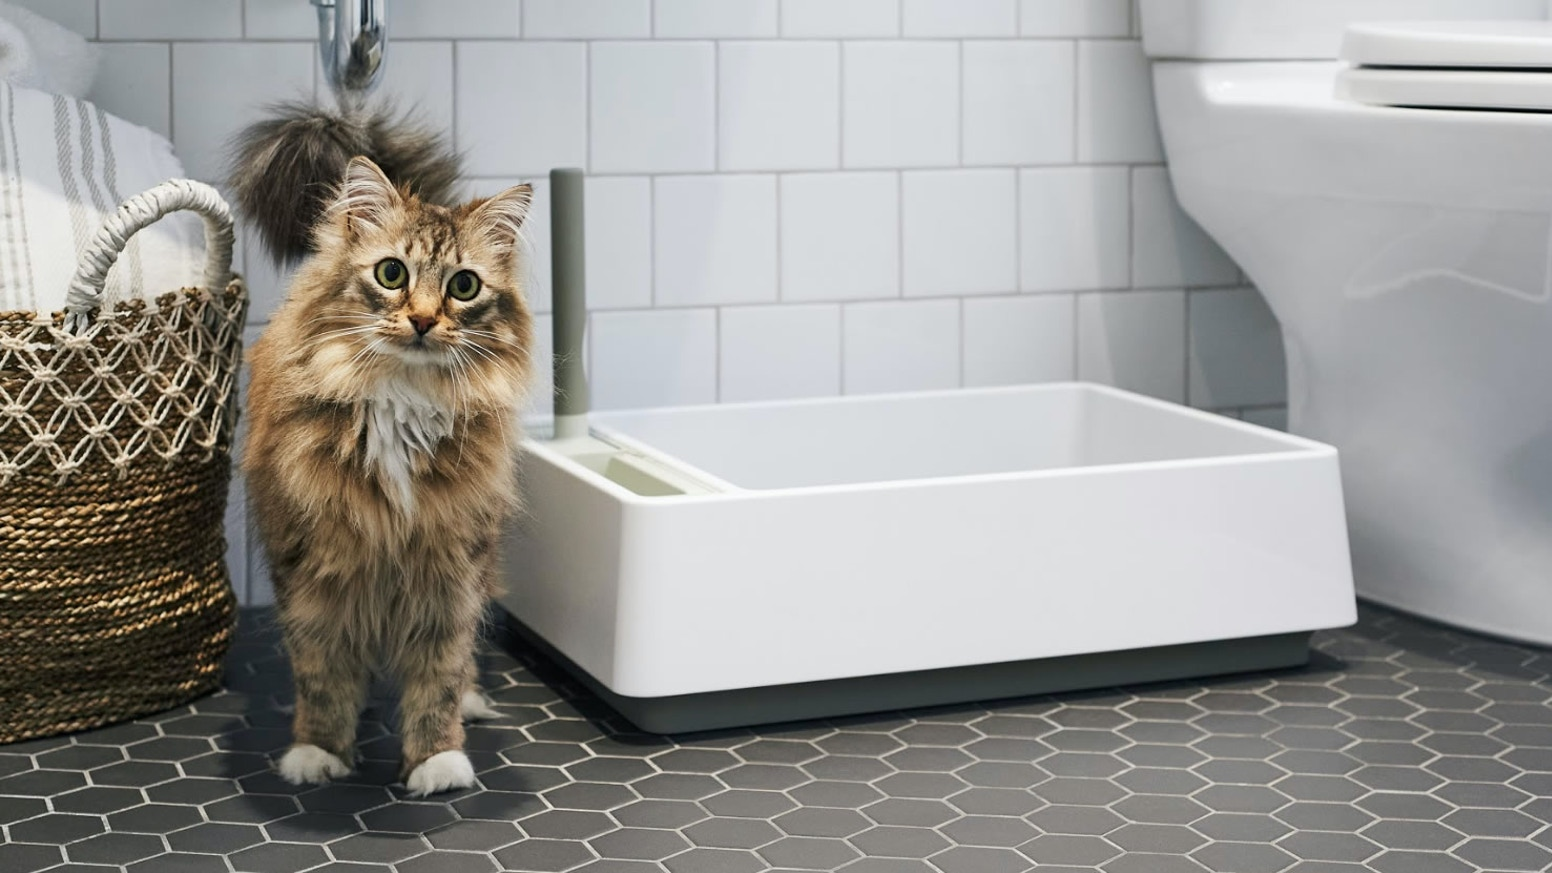 A simple, beautiful litter box with an integrated scoop, dustpan, and handbrush. Built by designers, engineers, and cat behaviorists.